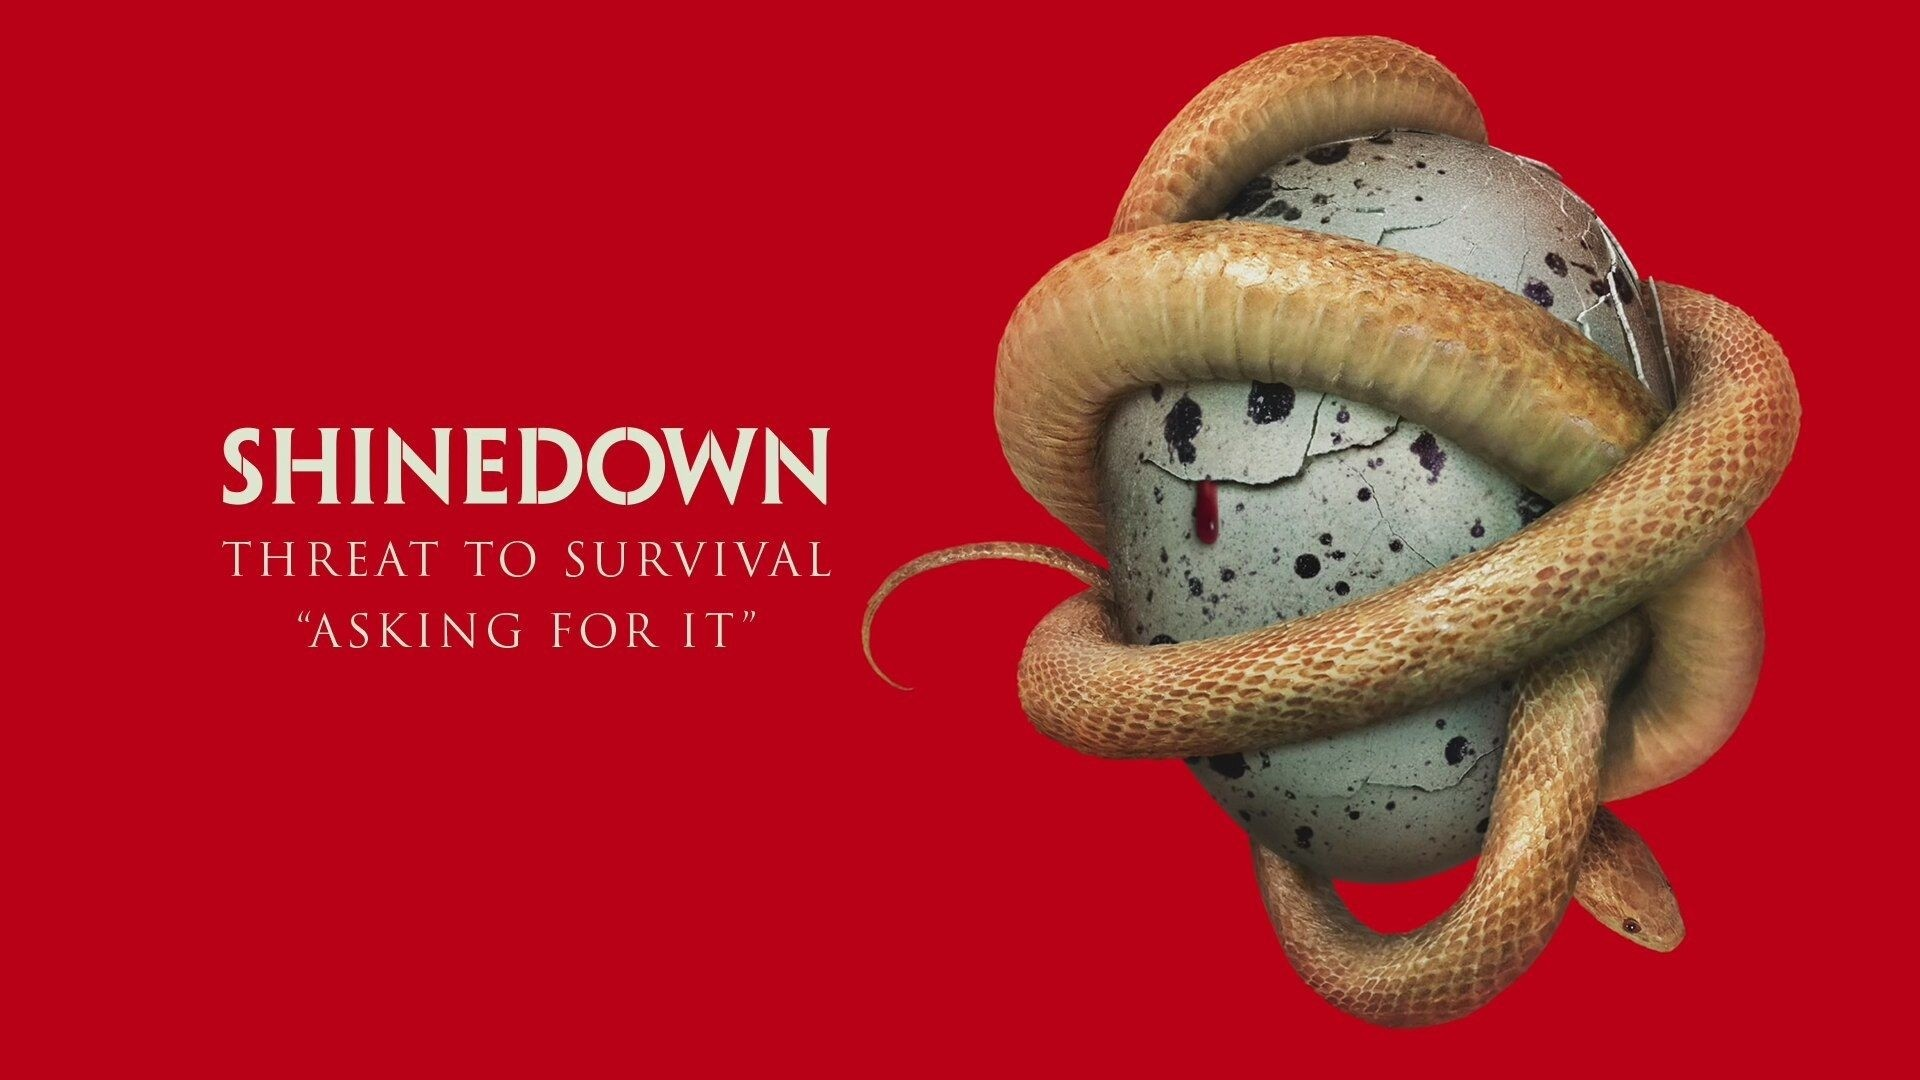 Shinedown free download wallpaper